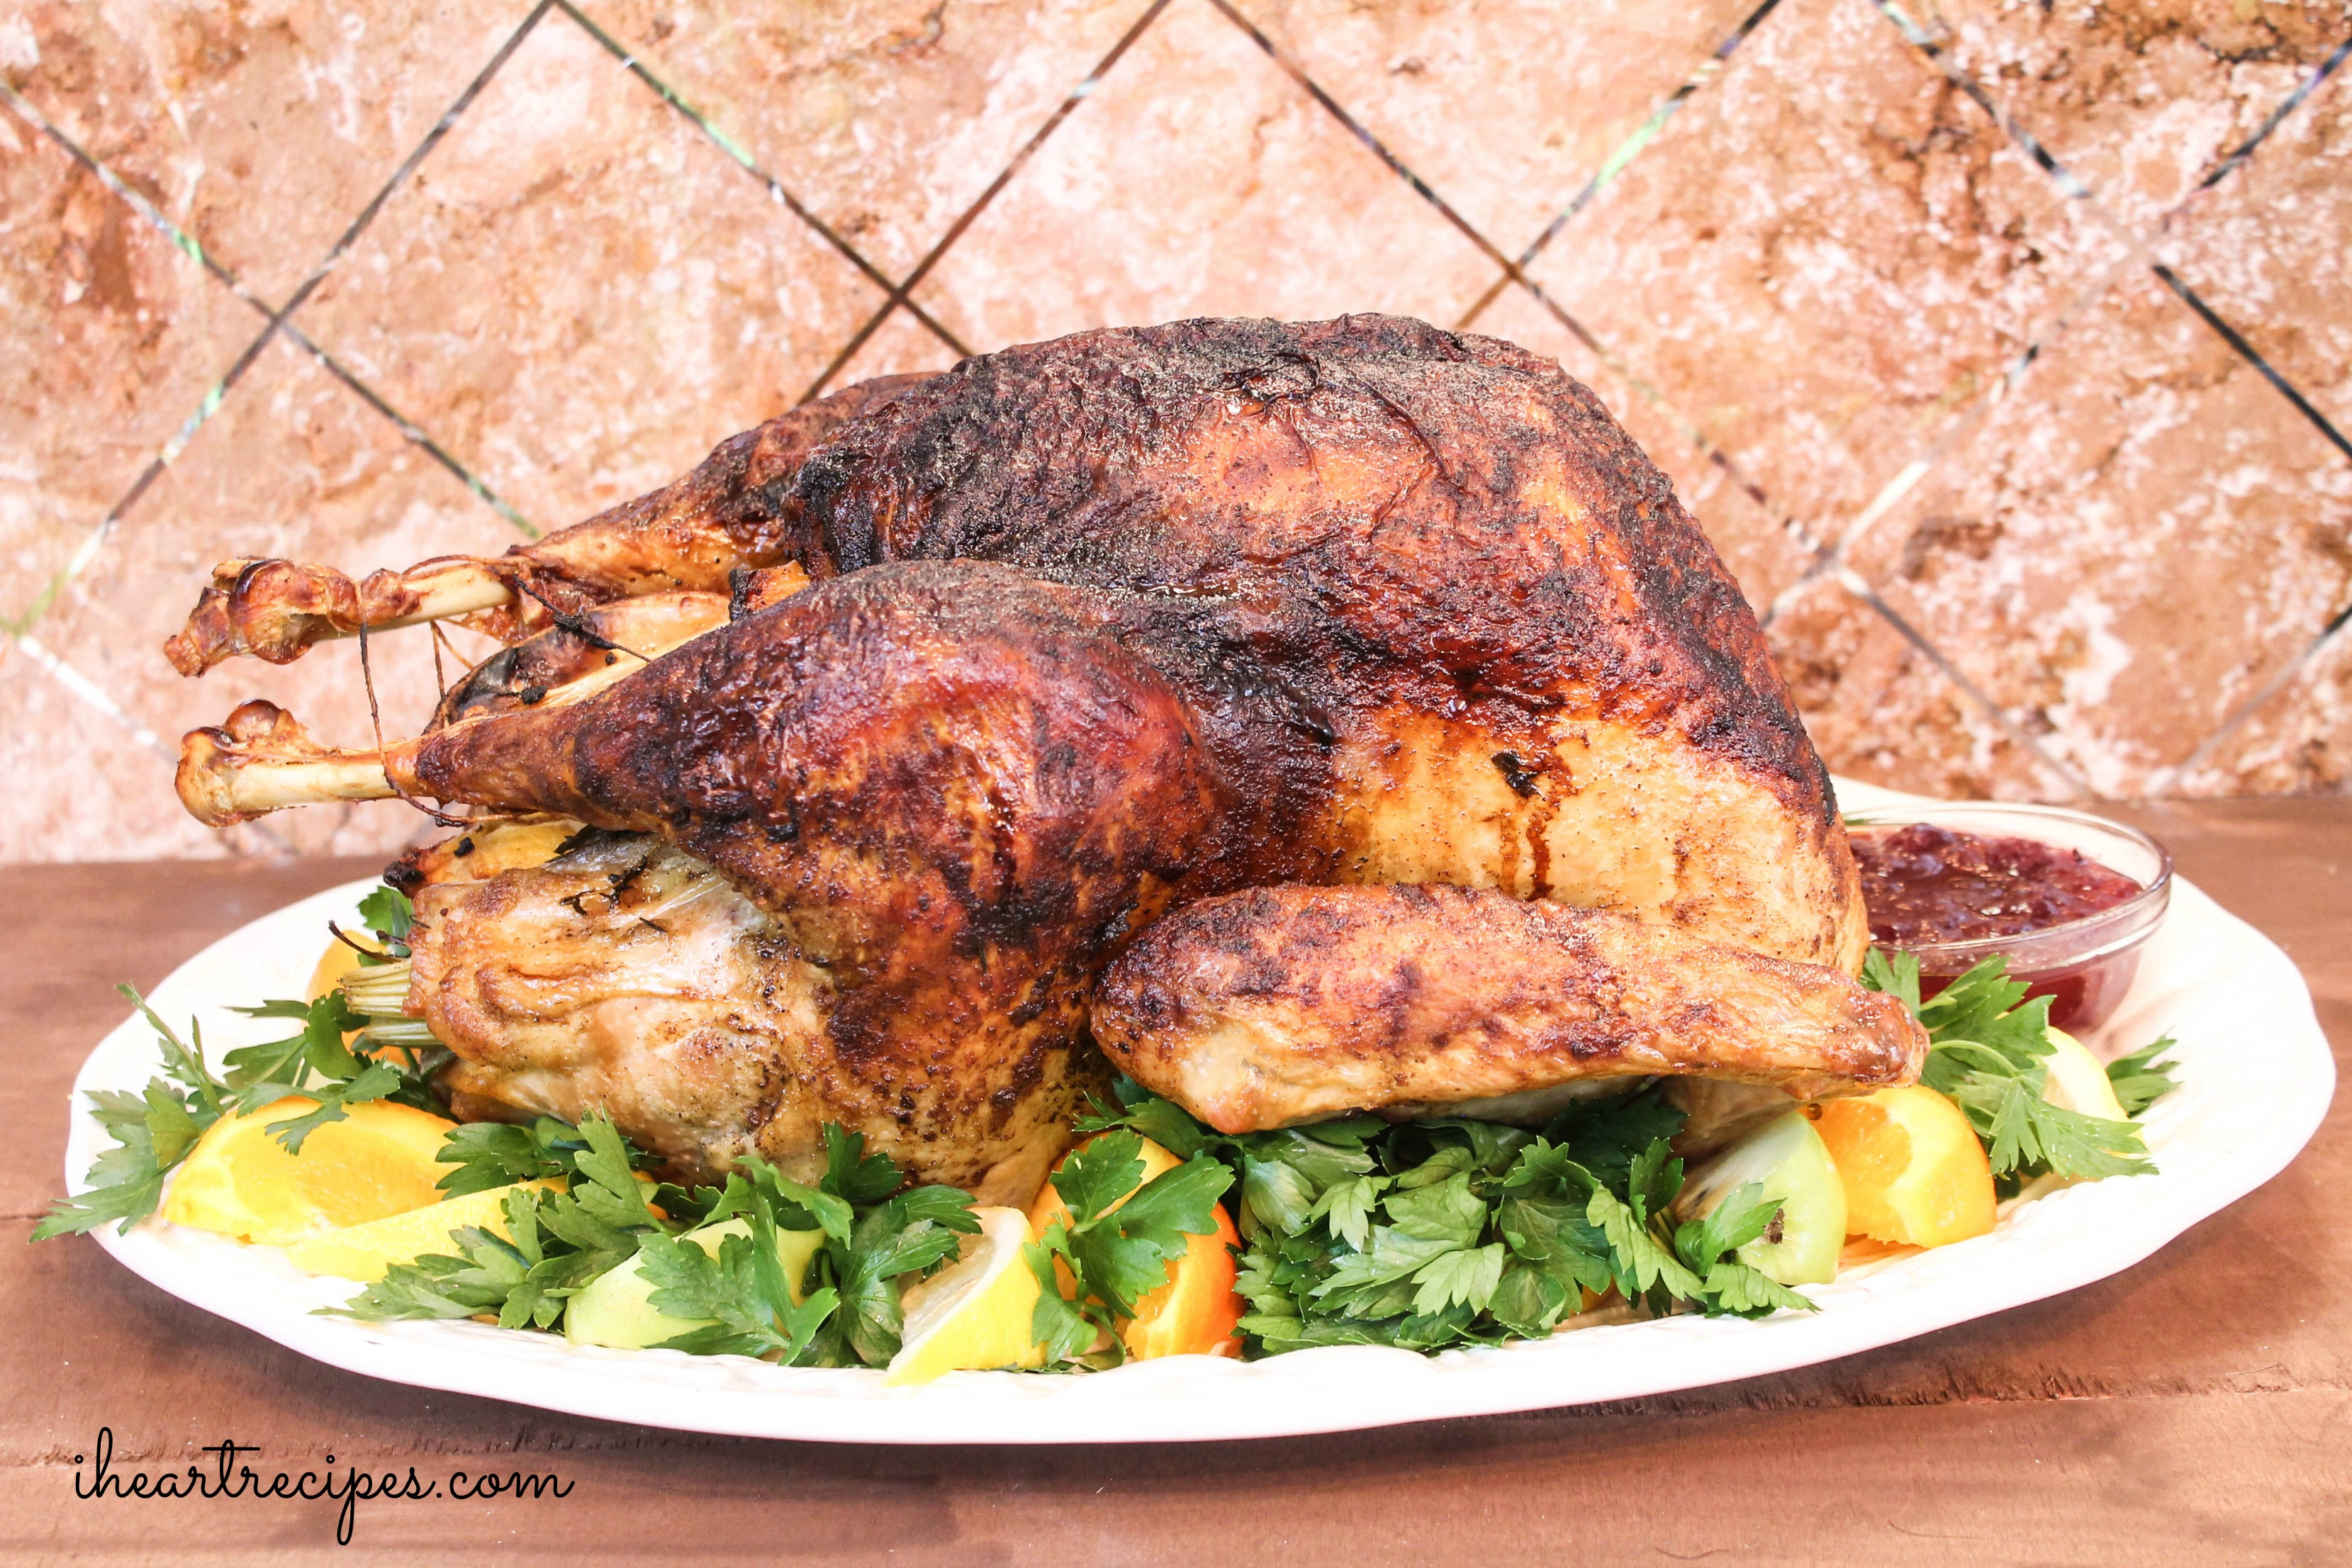 Serve your Juicy Whole Roast Turkey with candied yams, mac n cheese, and cornbread stuffing!